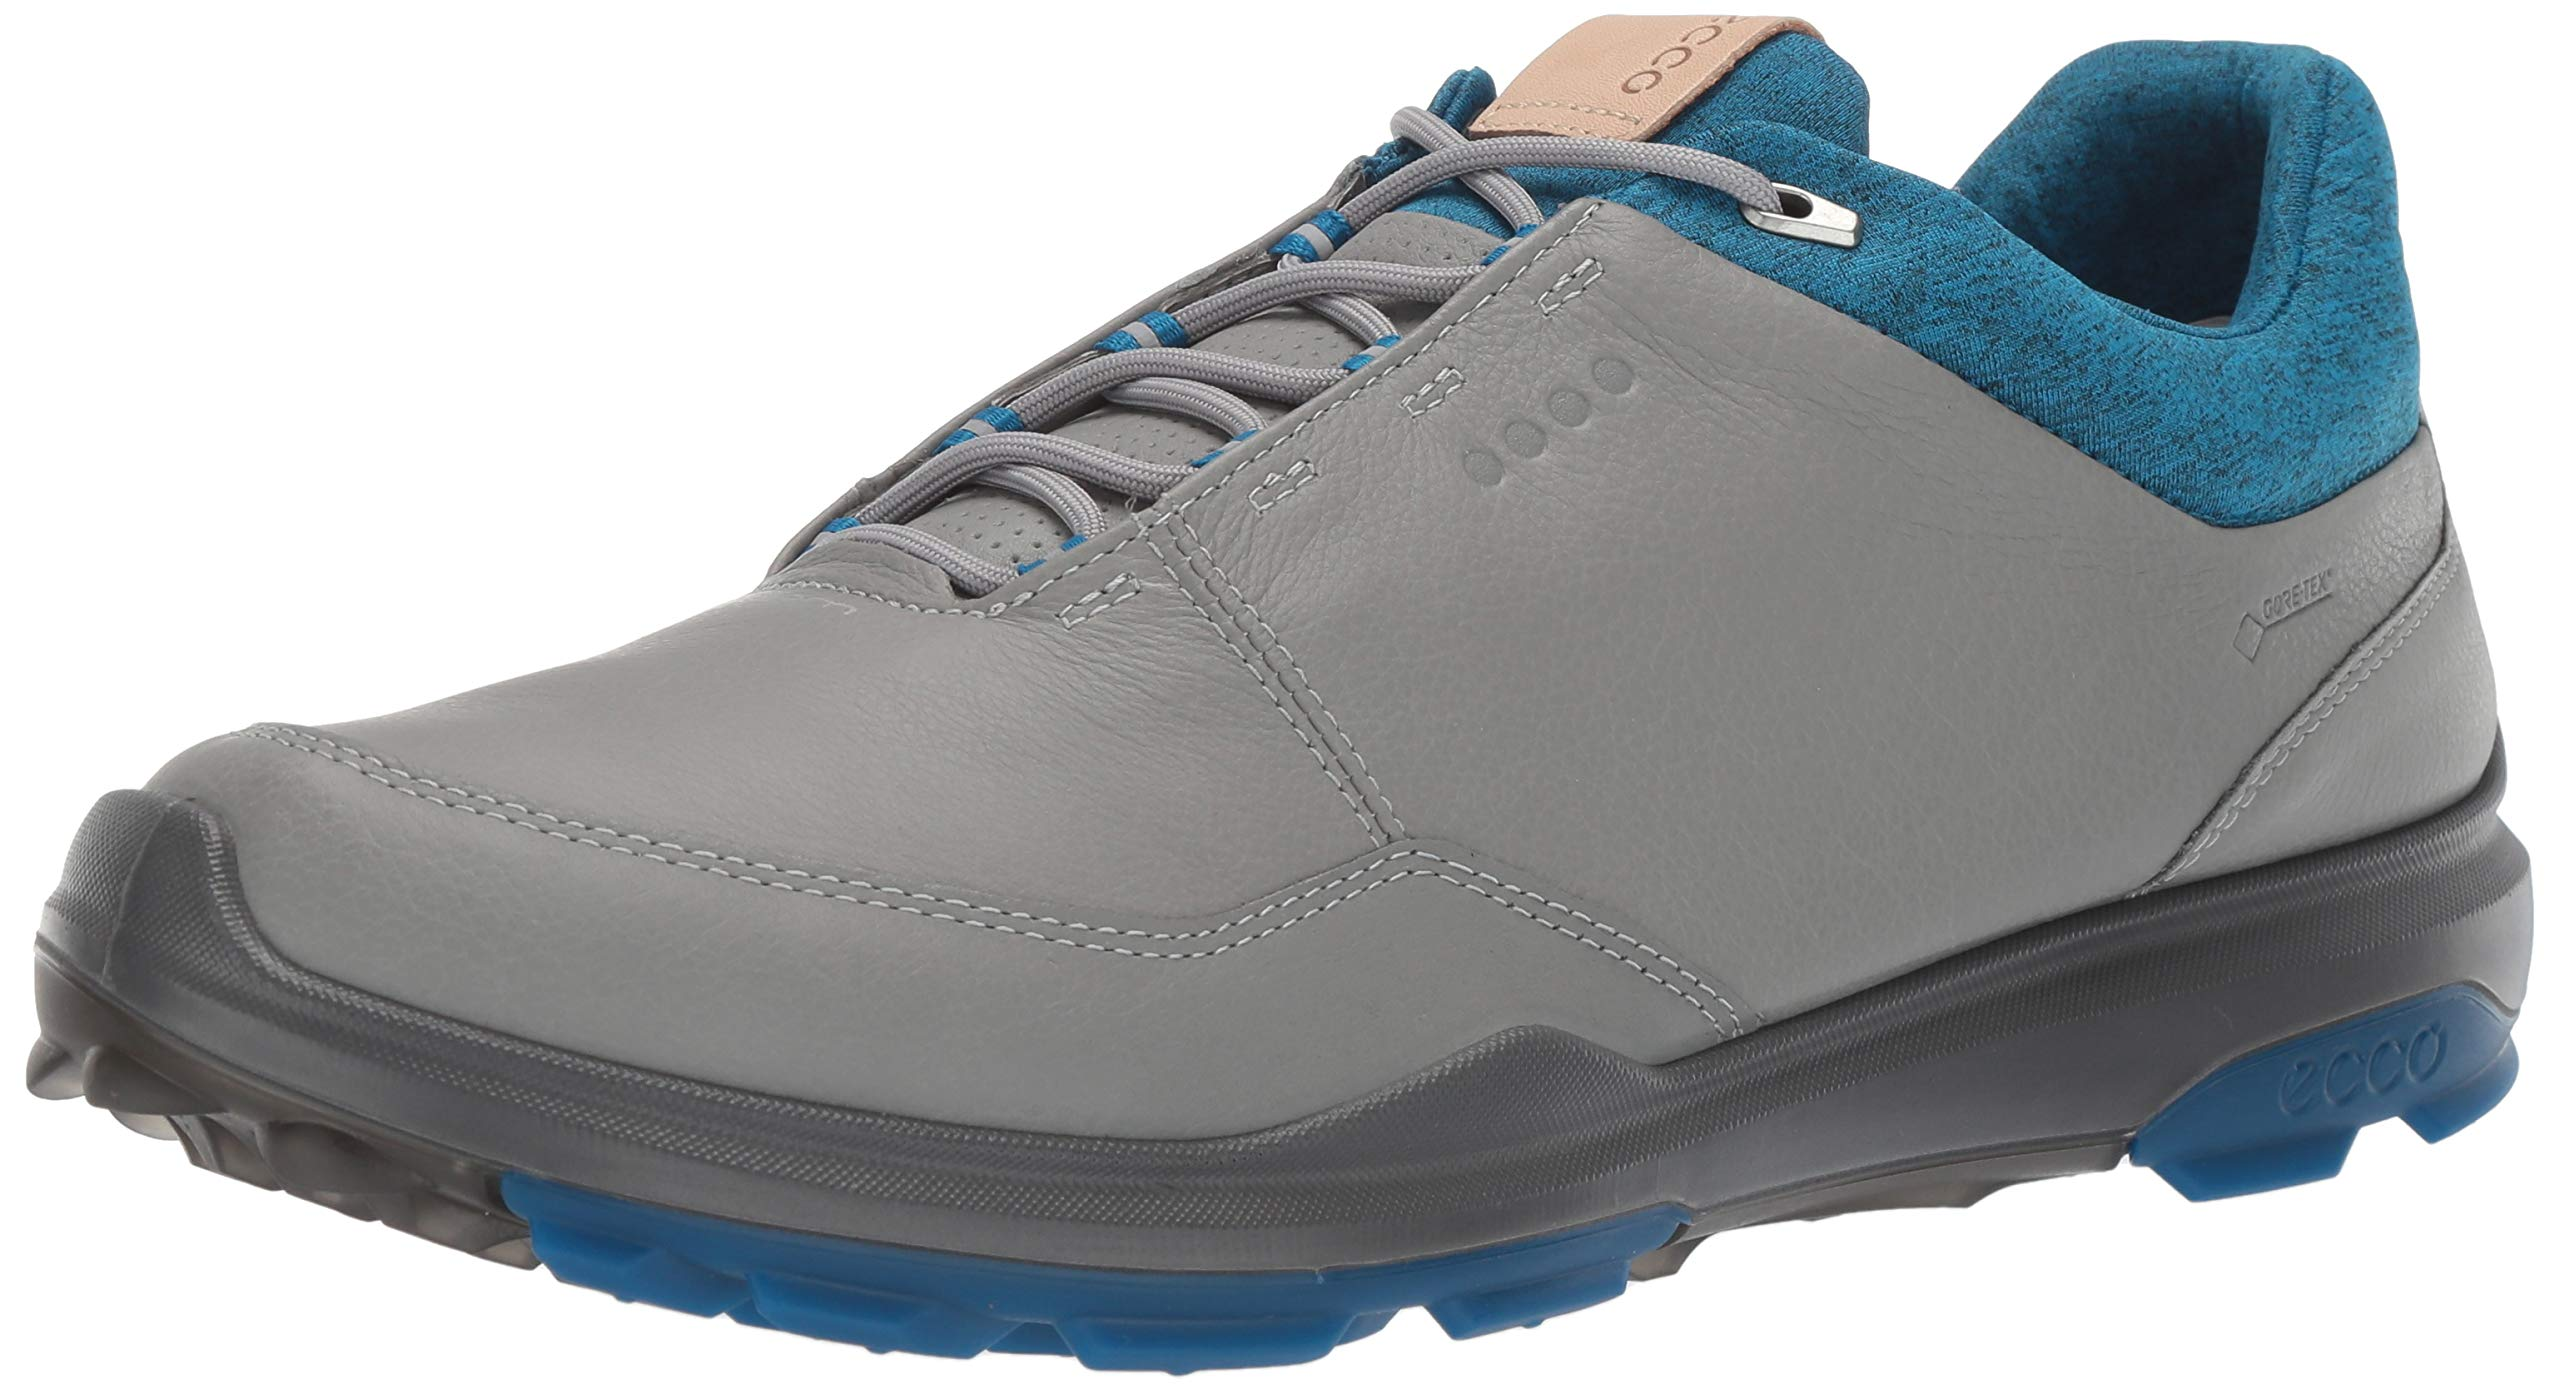 ECCO Men's Biom Hybrid 3 Gore-TEX Golf Shoe, Wild Dove Yak Leather, 11 M US by ECCO